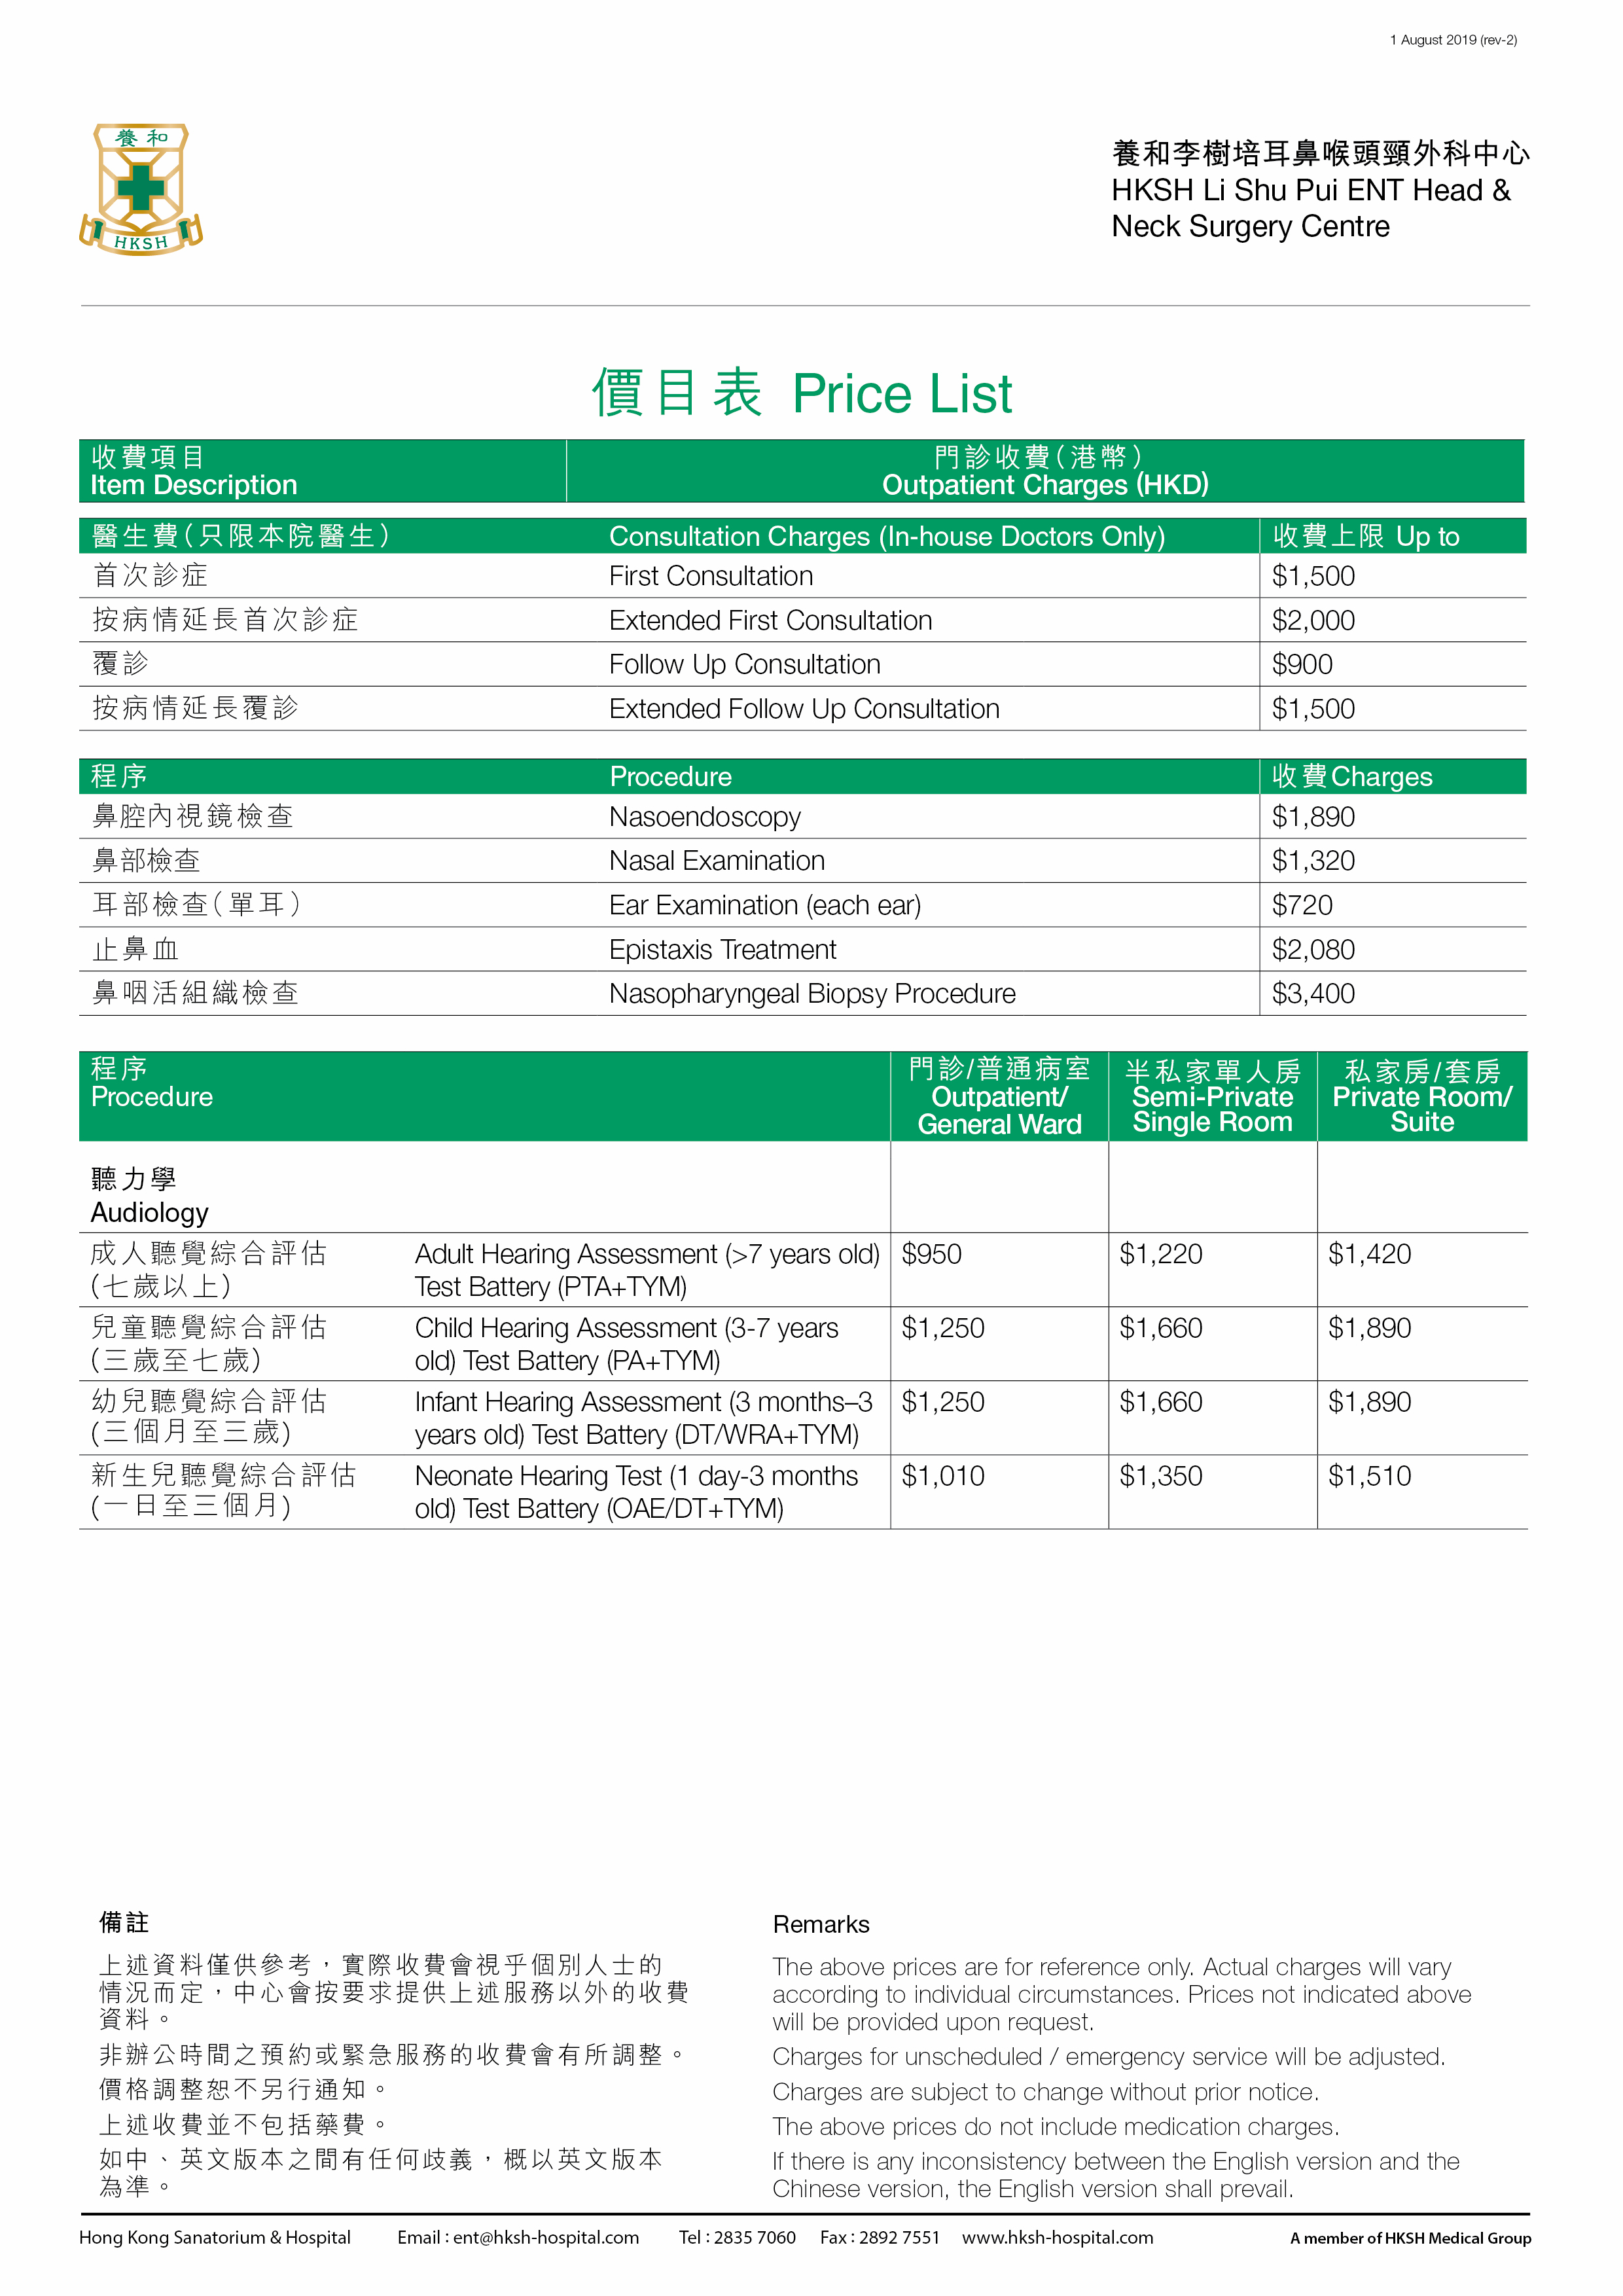 Li Shu Pui ENT Head and Neck Surgery Centre